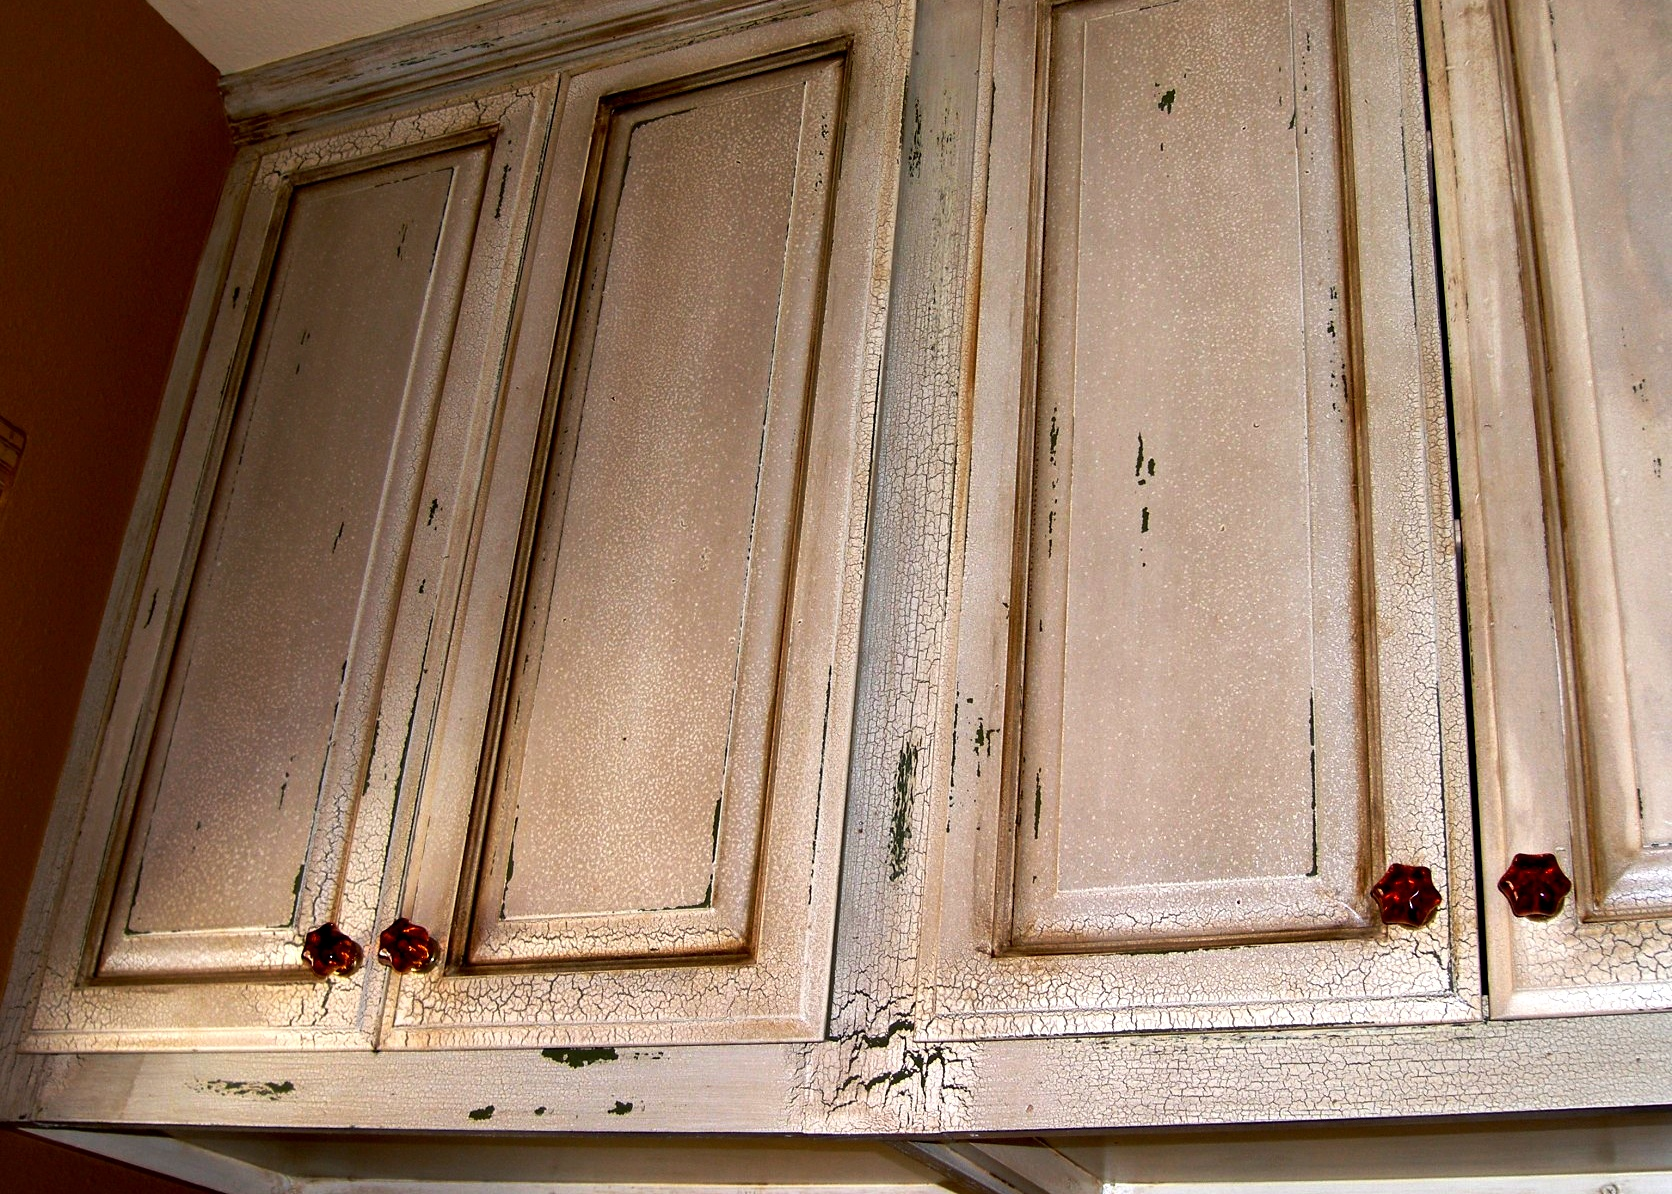 stunning How To Make Cabinets Look Old Part - 15: Distressed Kitchen Cabinet Doors. Distressed Kitchen Cabinet Doors. How Diy  Modern Kitchen Cabinet Remodel Update Cabinets Make Old Look ...